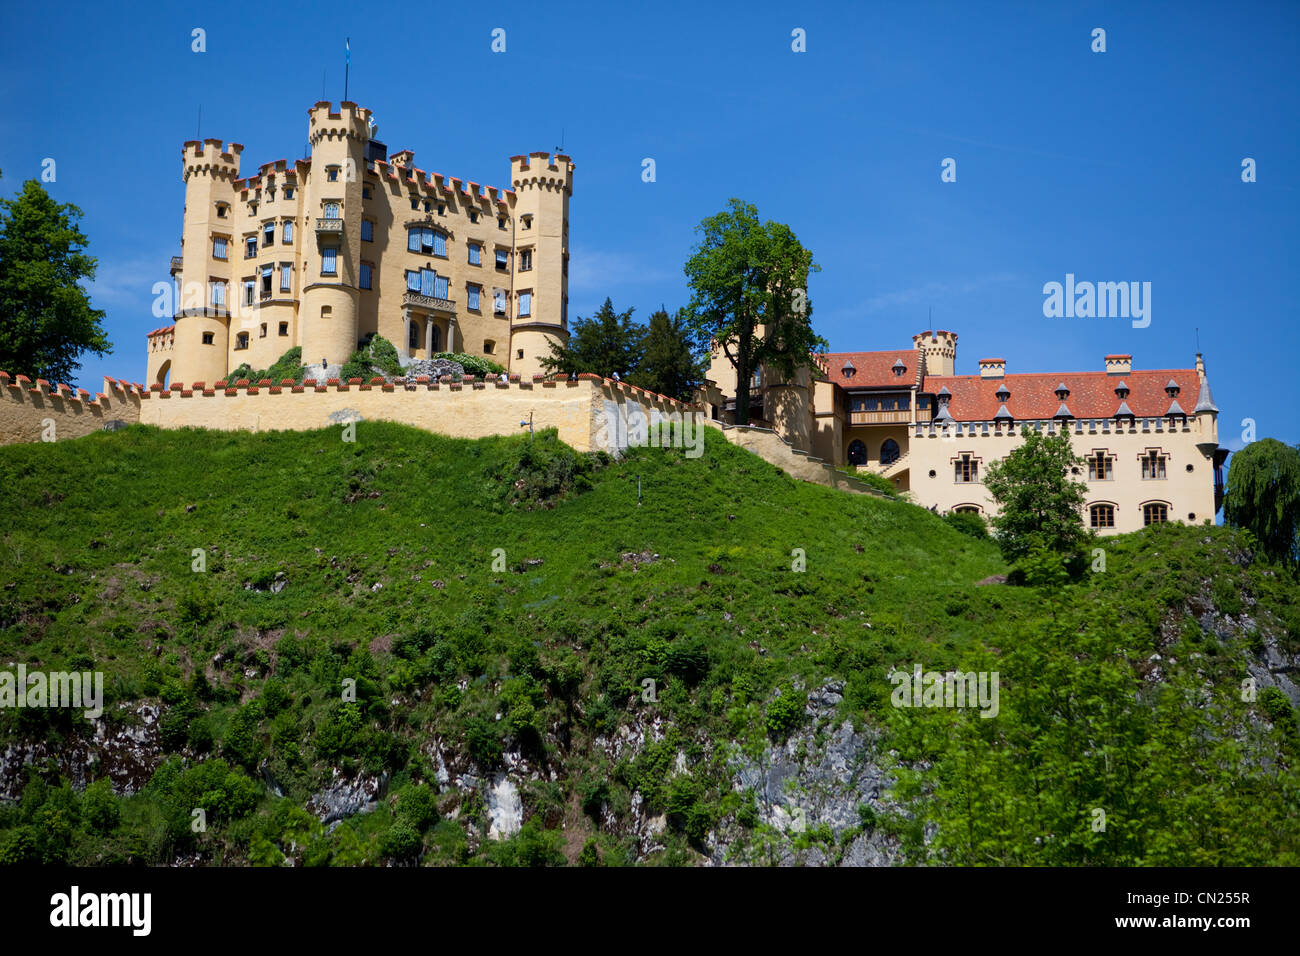 Hohenschwangue is a 19th century castle in southern Germany. It was the childhood residence of King Ludwig II of - Stock Image